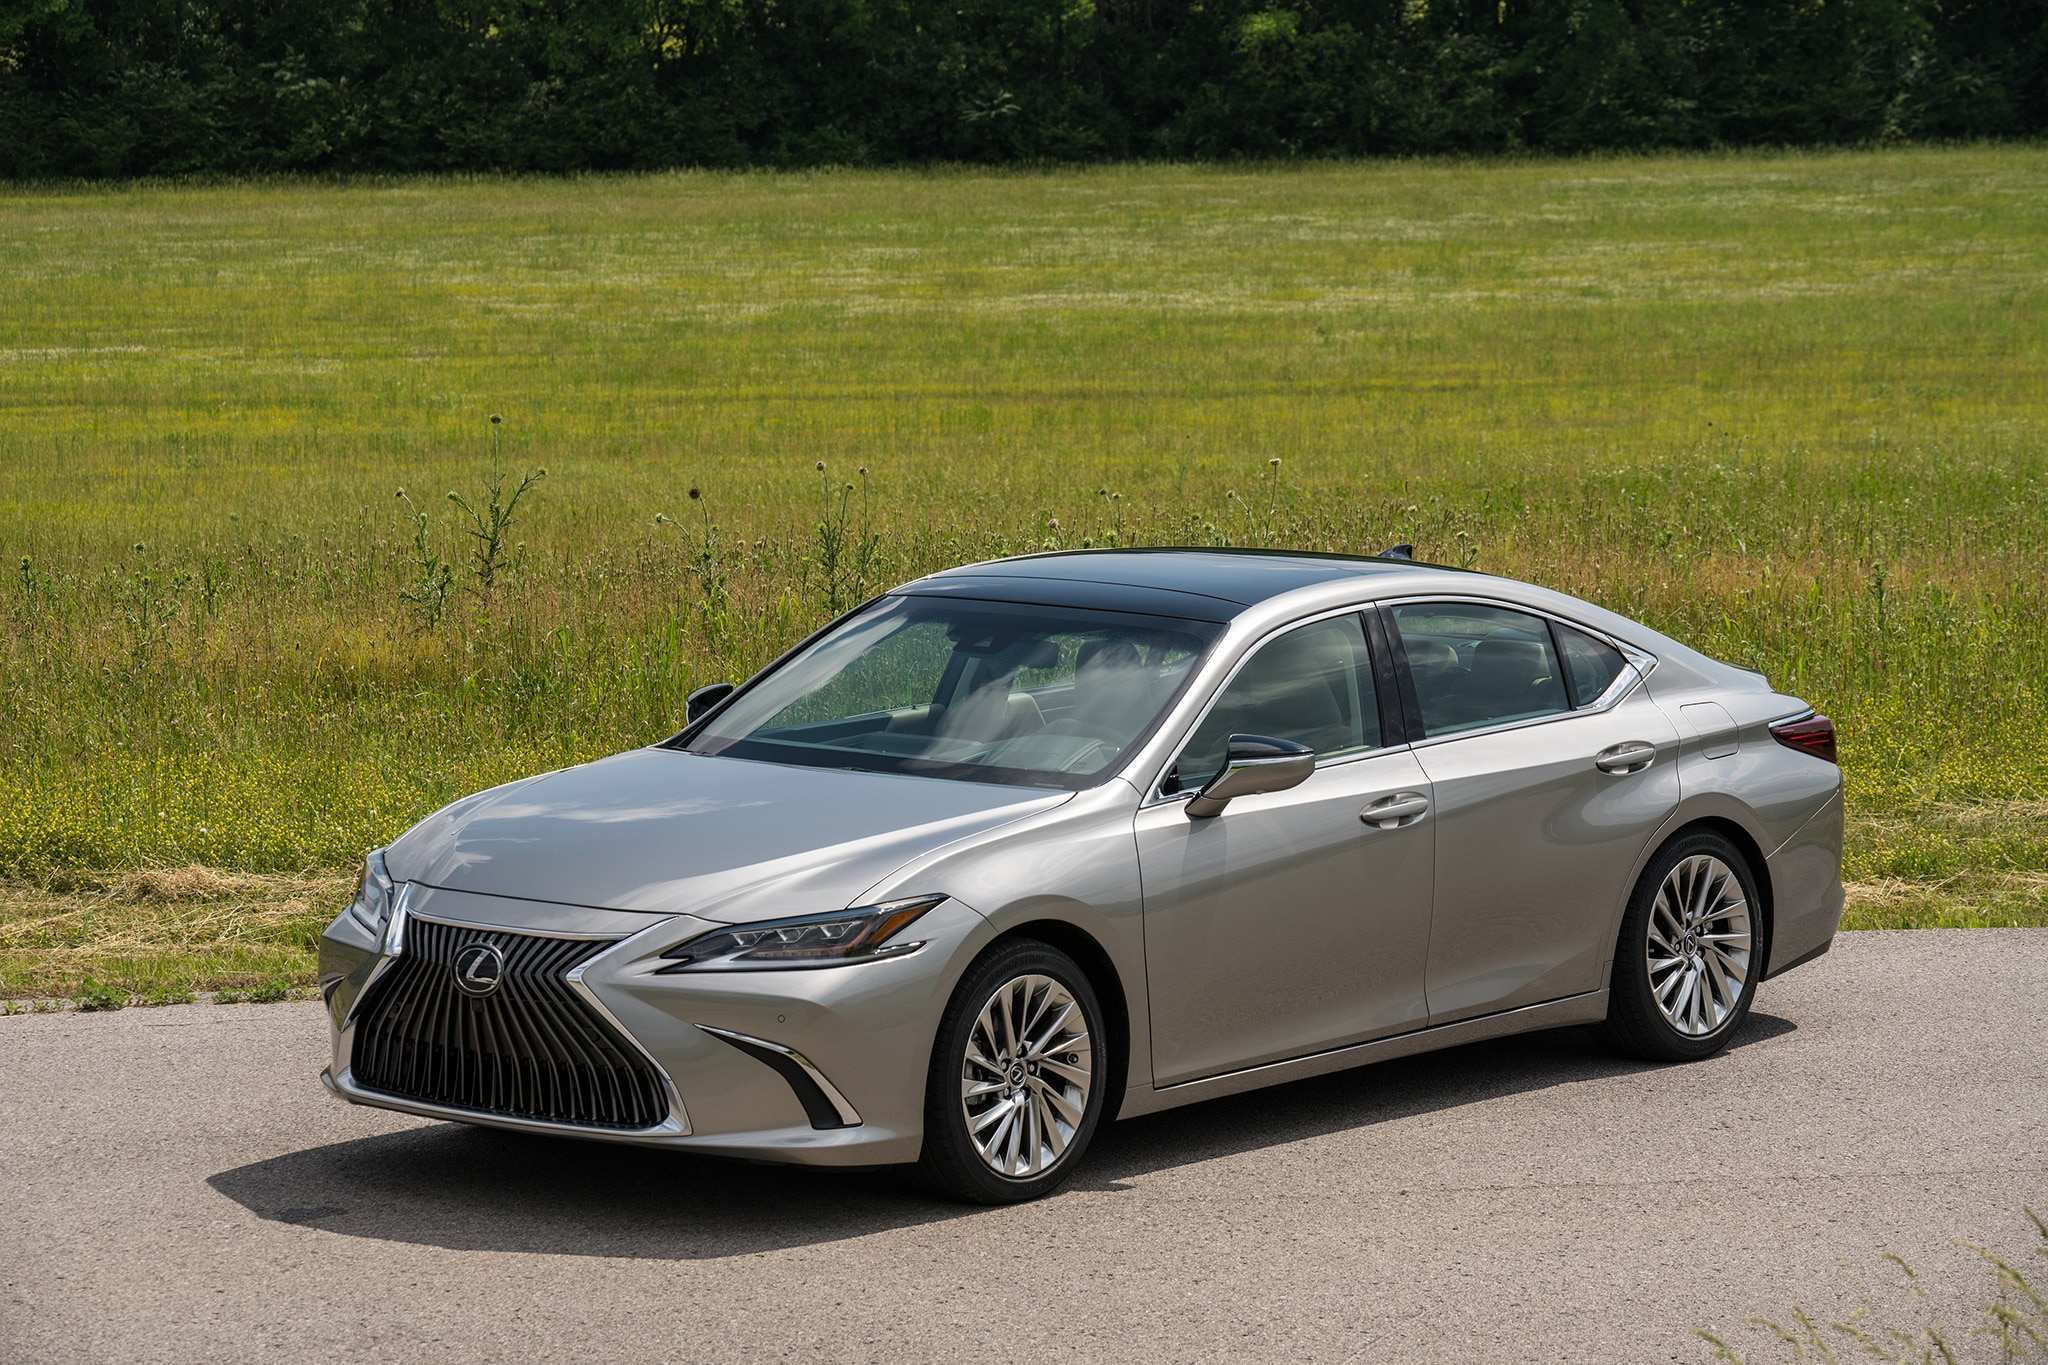 42 Best Review 2020 Lexus Es 350 Brochure Speed Test by 2020 Lexus Es 350 Brochure